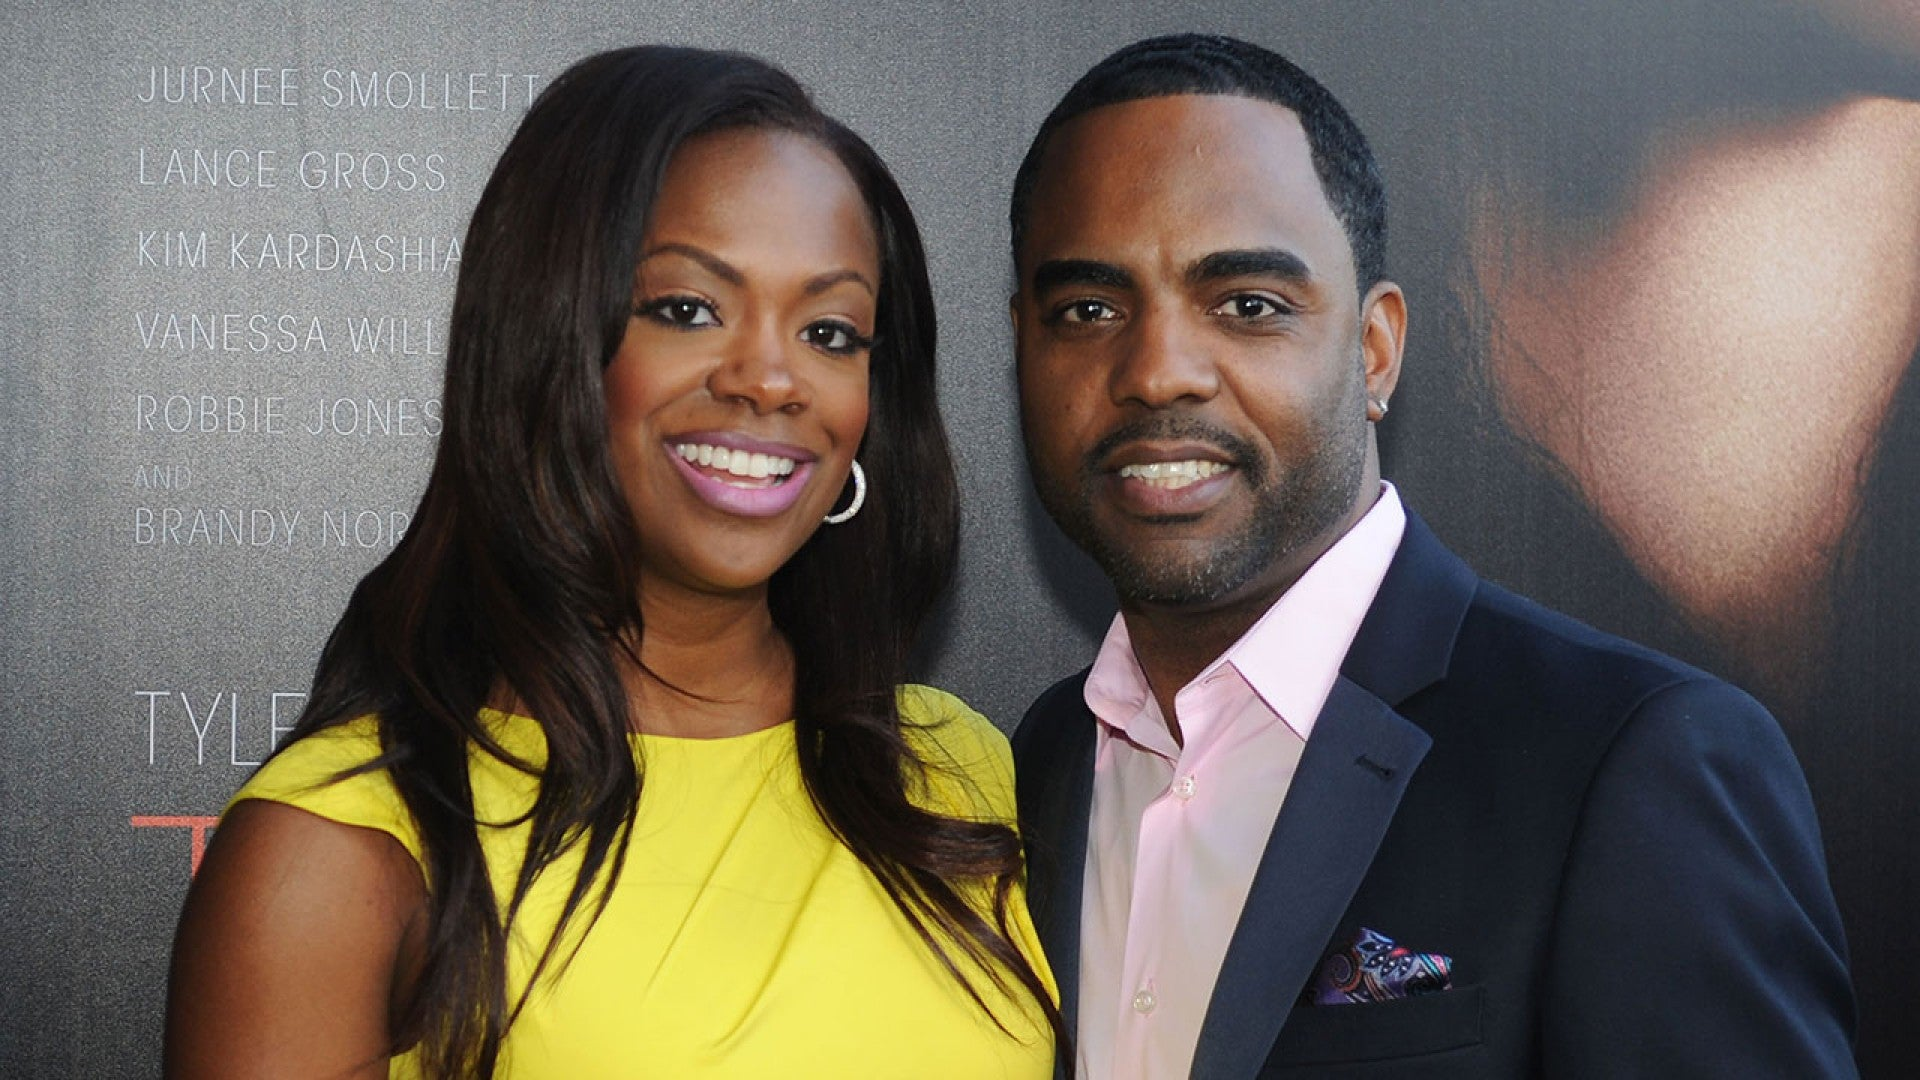 Kandi Burruss Announces Fans That Her Husband, Todd Tucker Teamed Up With Shamea Morton And More Ladies To Bring Fans New Juicy Entertainment